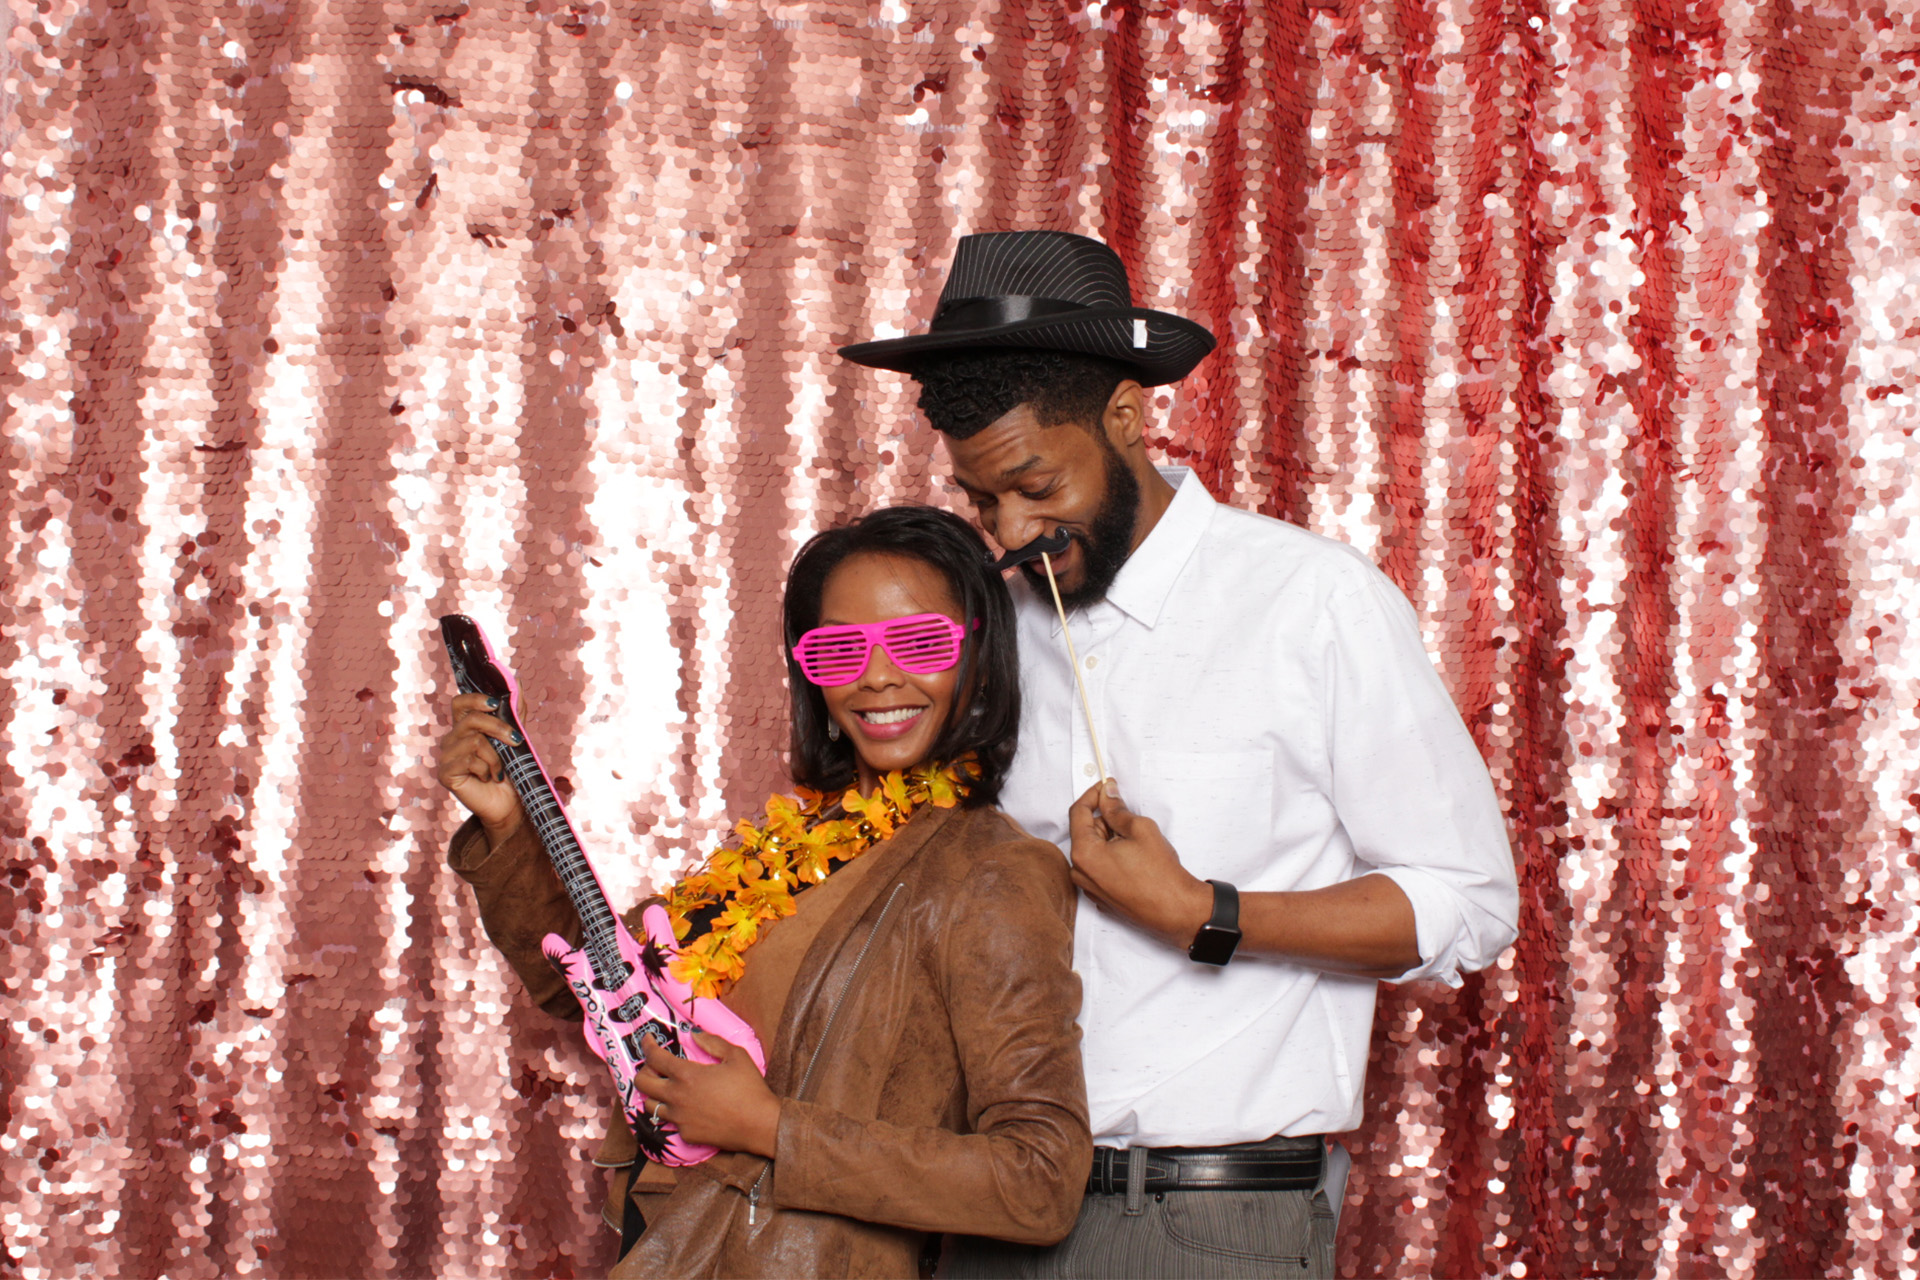 philadelphia wedding photo booth rental